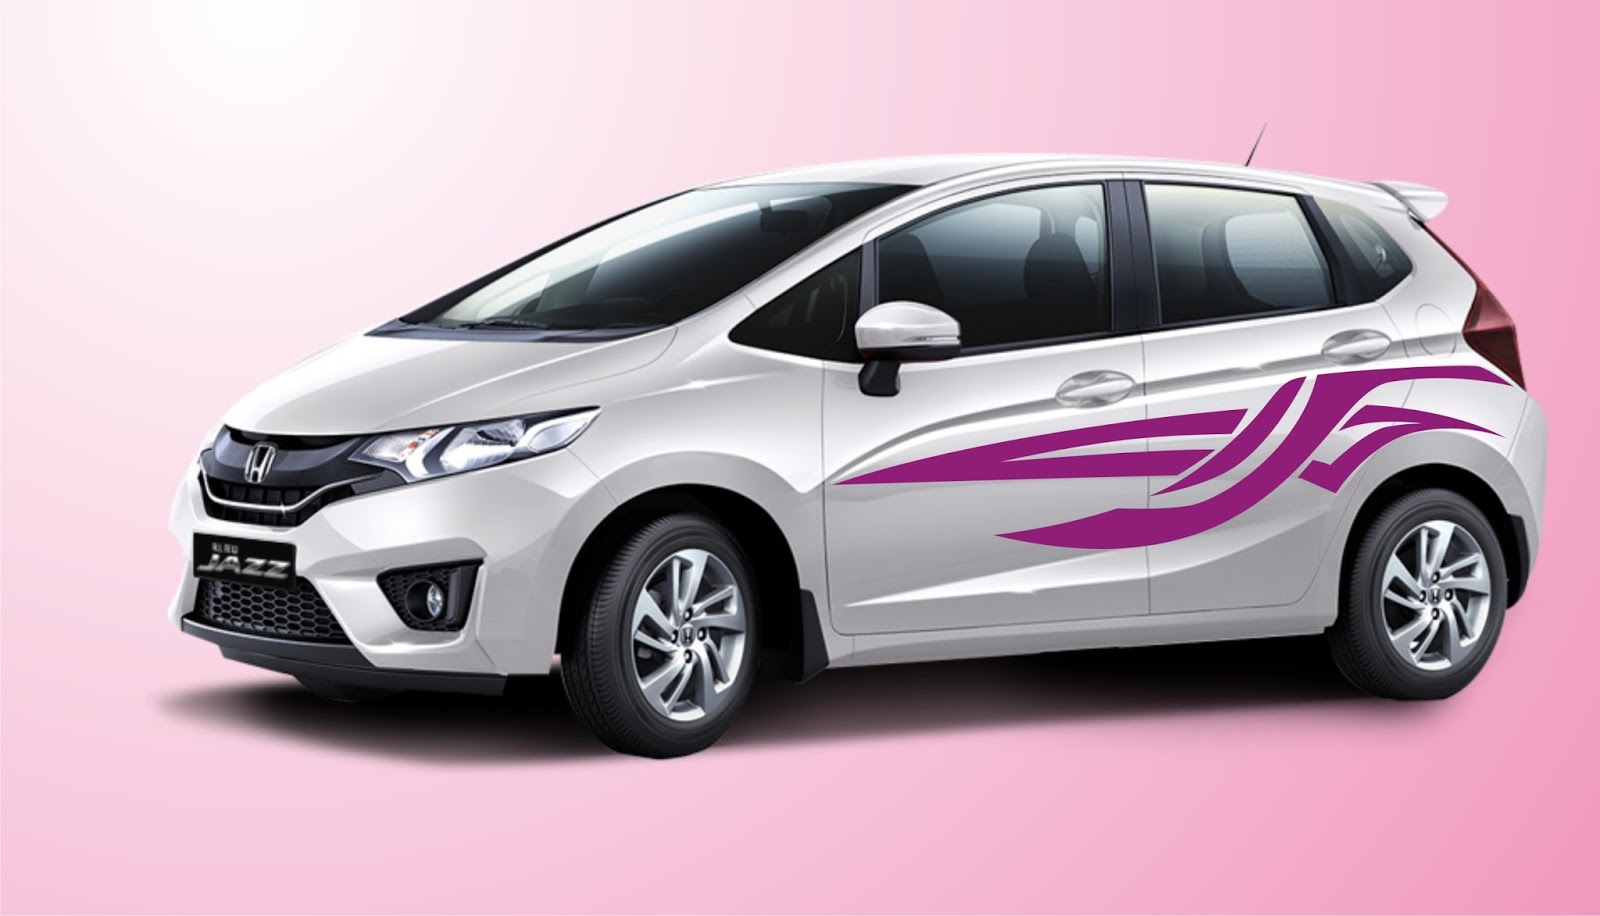 Honda car sticker design - Creatifdesign Warm Greetings To Fans Of Car Design With Purple Themed Sticker Which Is Where This Design Fits Perfectly With The Design Of Today